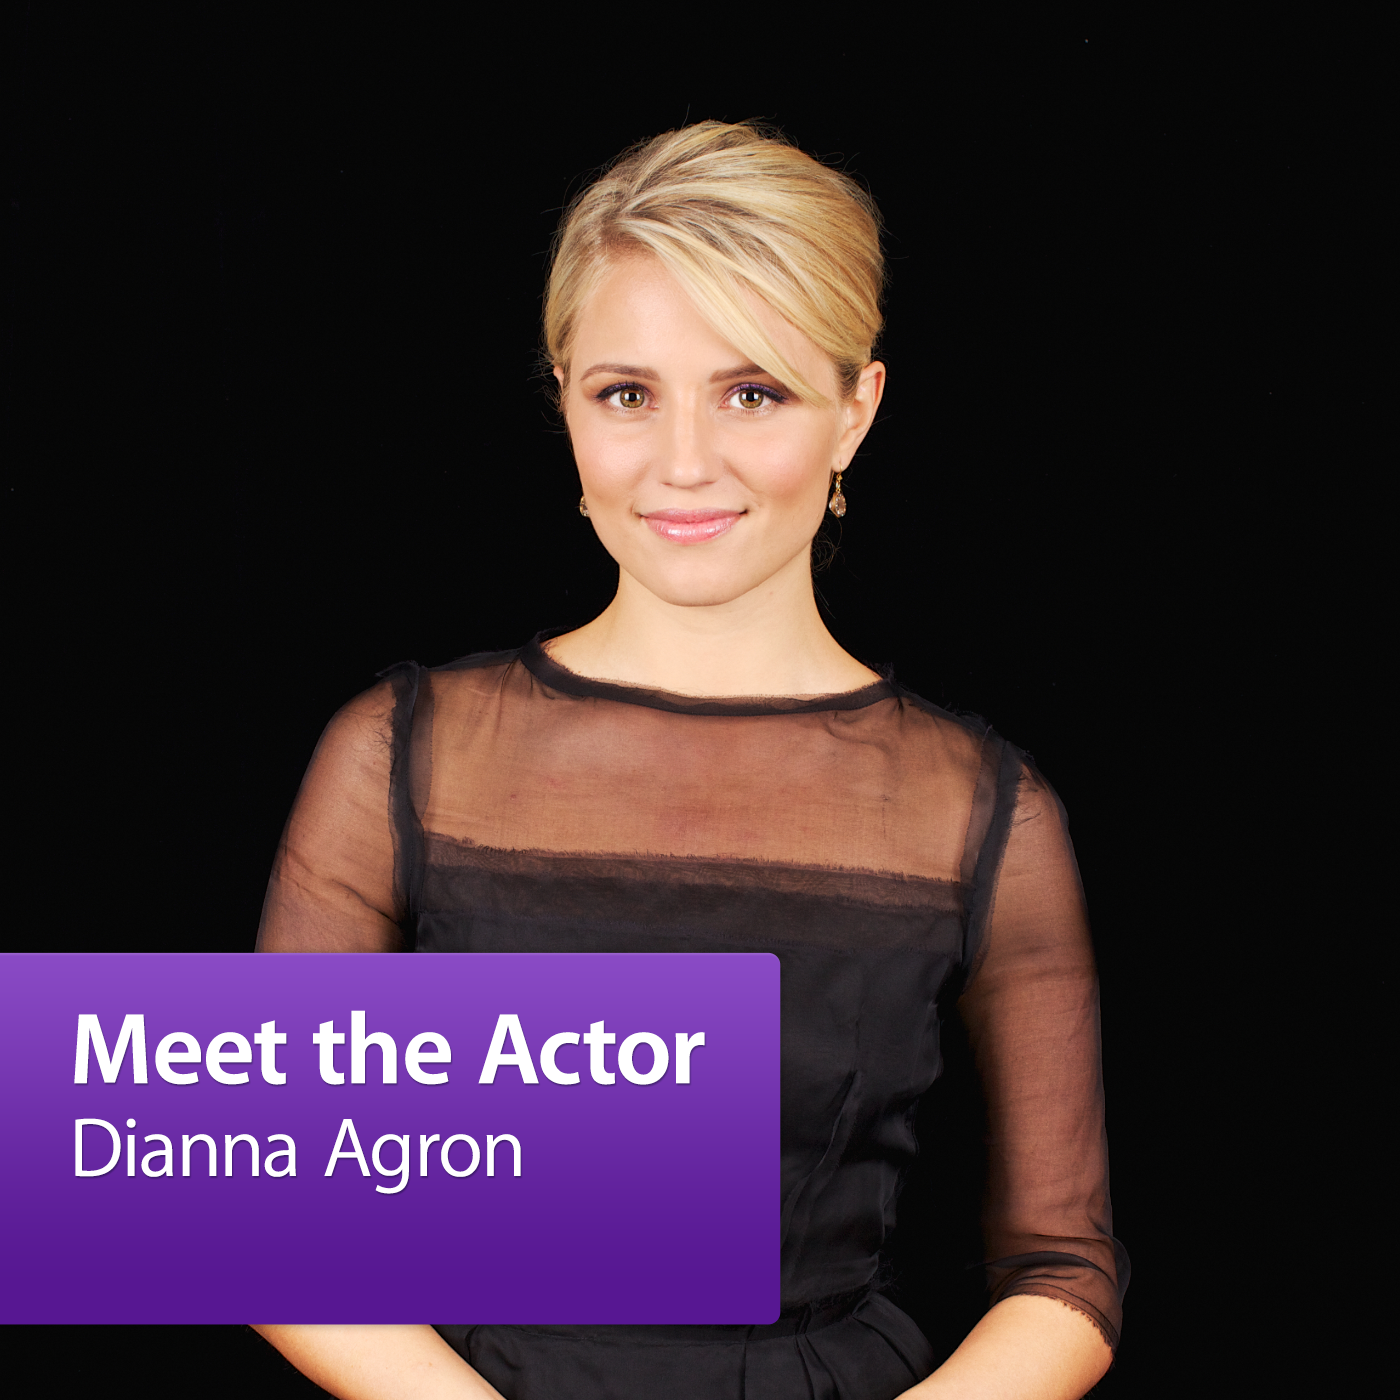 Dianna Agron: Meet the Actor